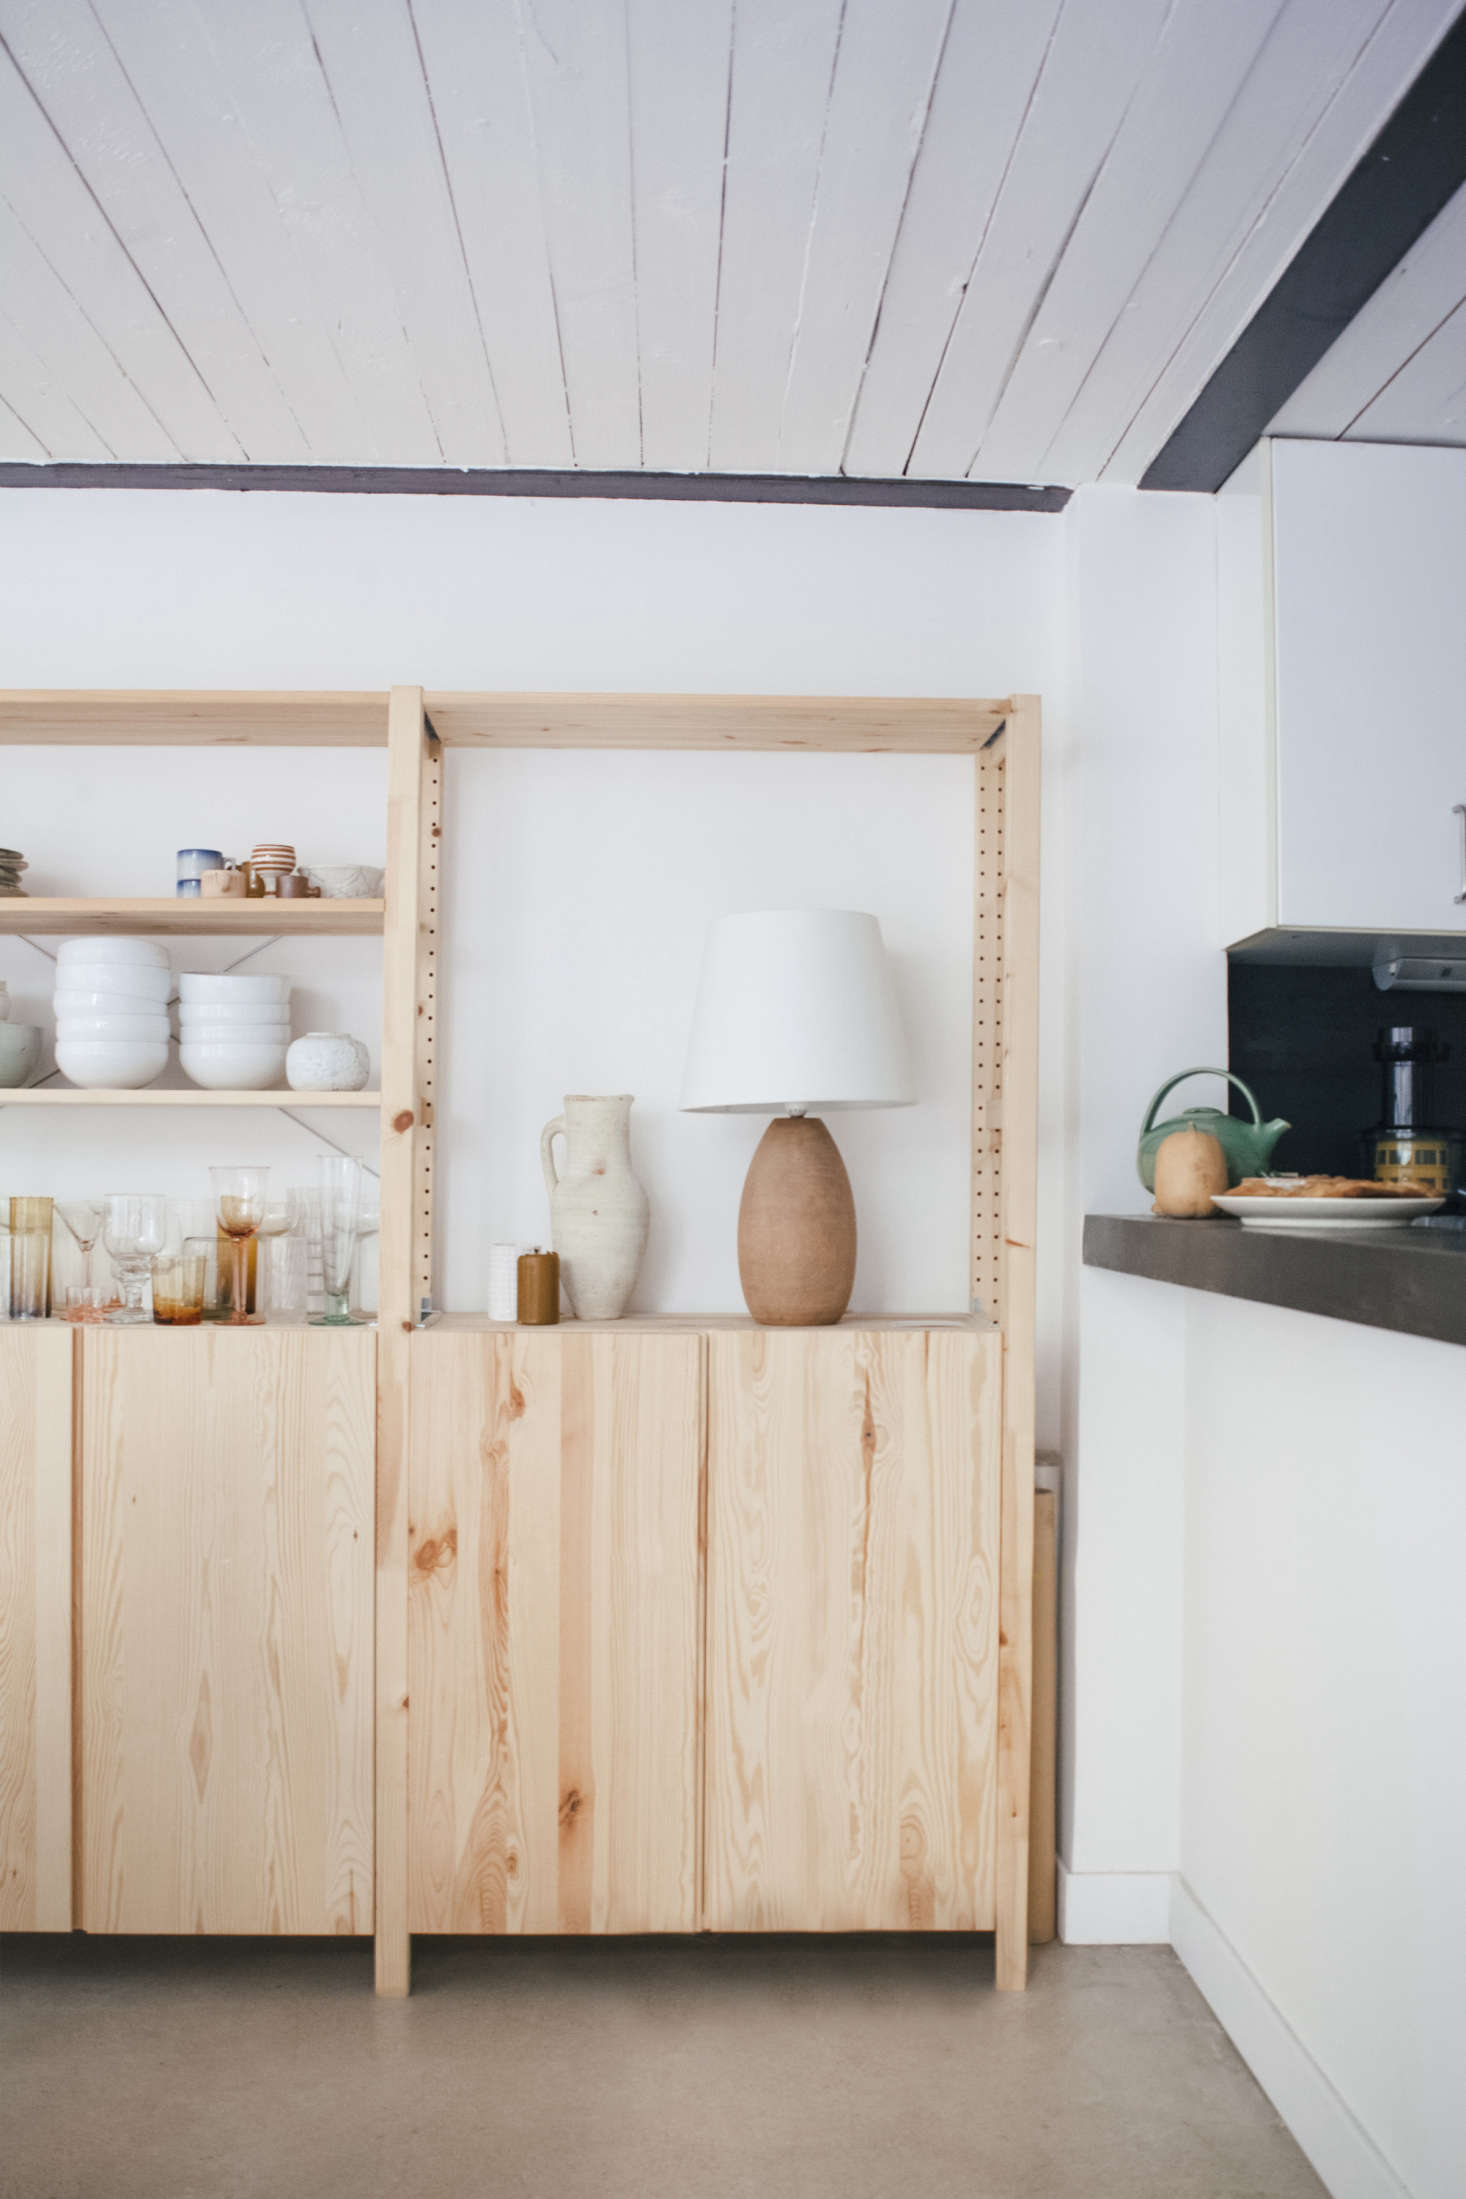 """Two side-by-side pine Ivar Shelving Units from Ikea hold Lucile's things, from """"years of collecting"""": glassware from Emmaüs, France's chain of charity shops, and Philly AIDS Thrift; ceramics by Lucile herself or by friend and artist Cécile Daladier; and a wood-base table lamp from resale site leboncoin.fr."""